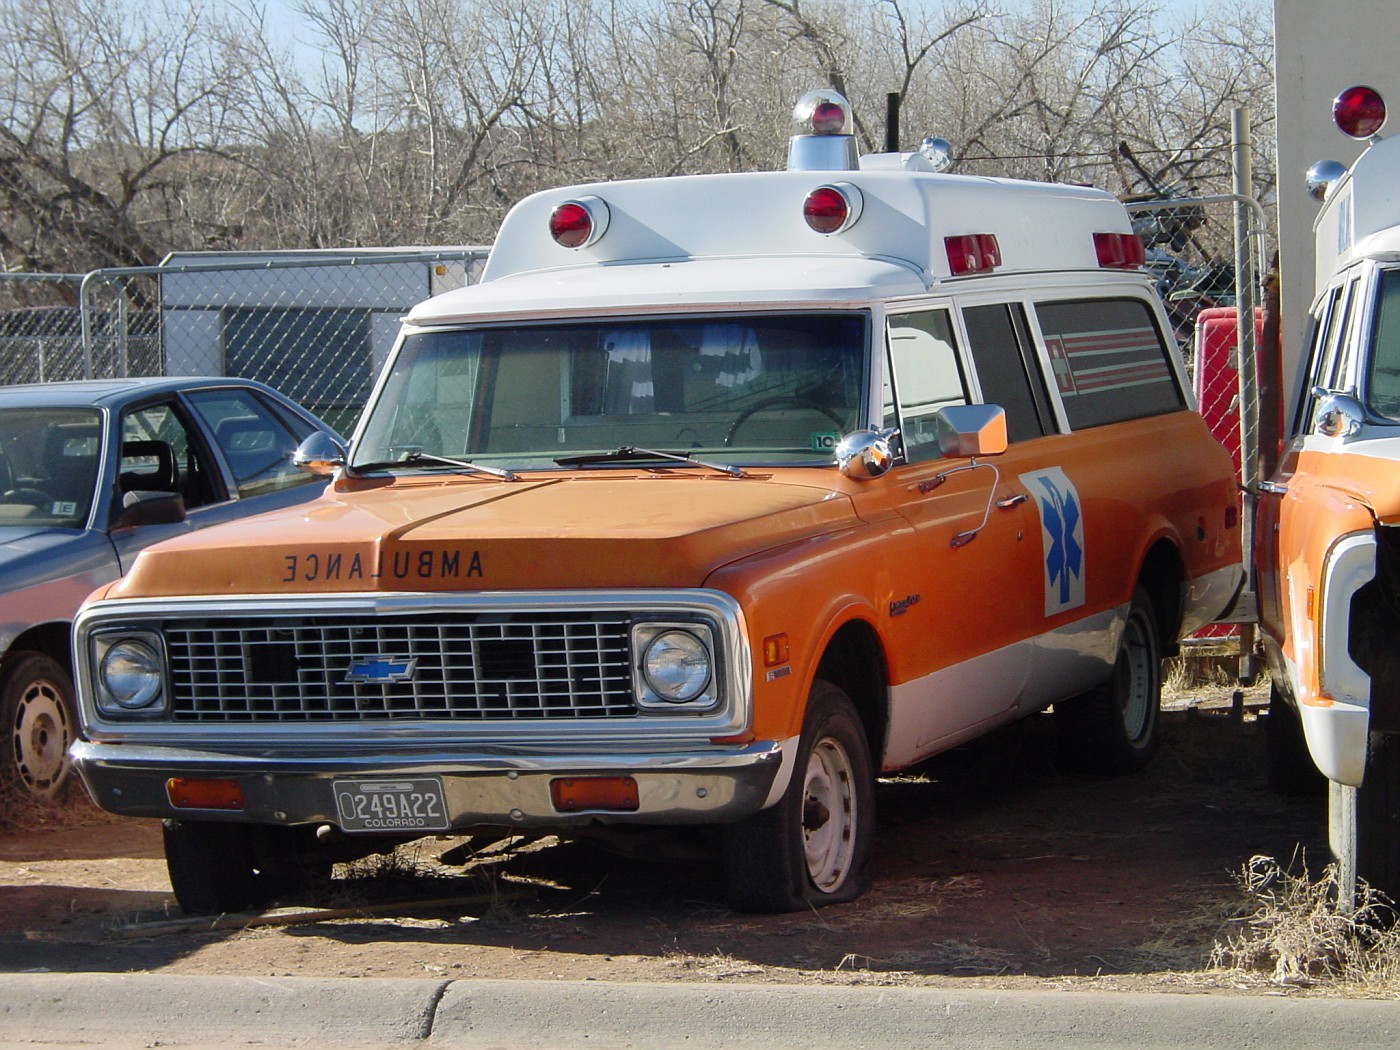 CO - Chevy ambulance (72) in a Colorado boneyard